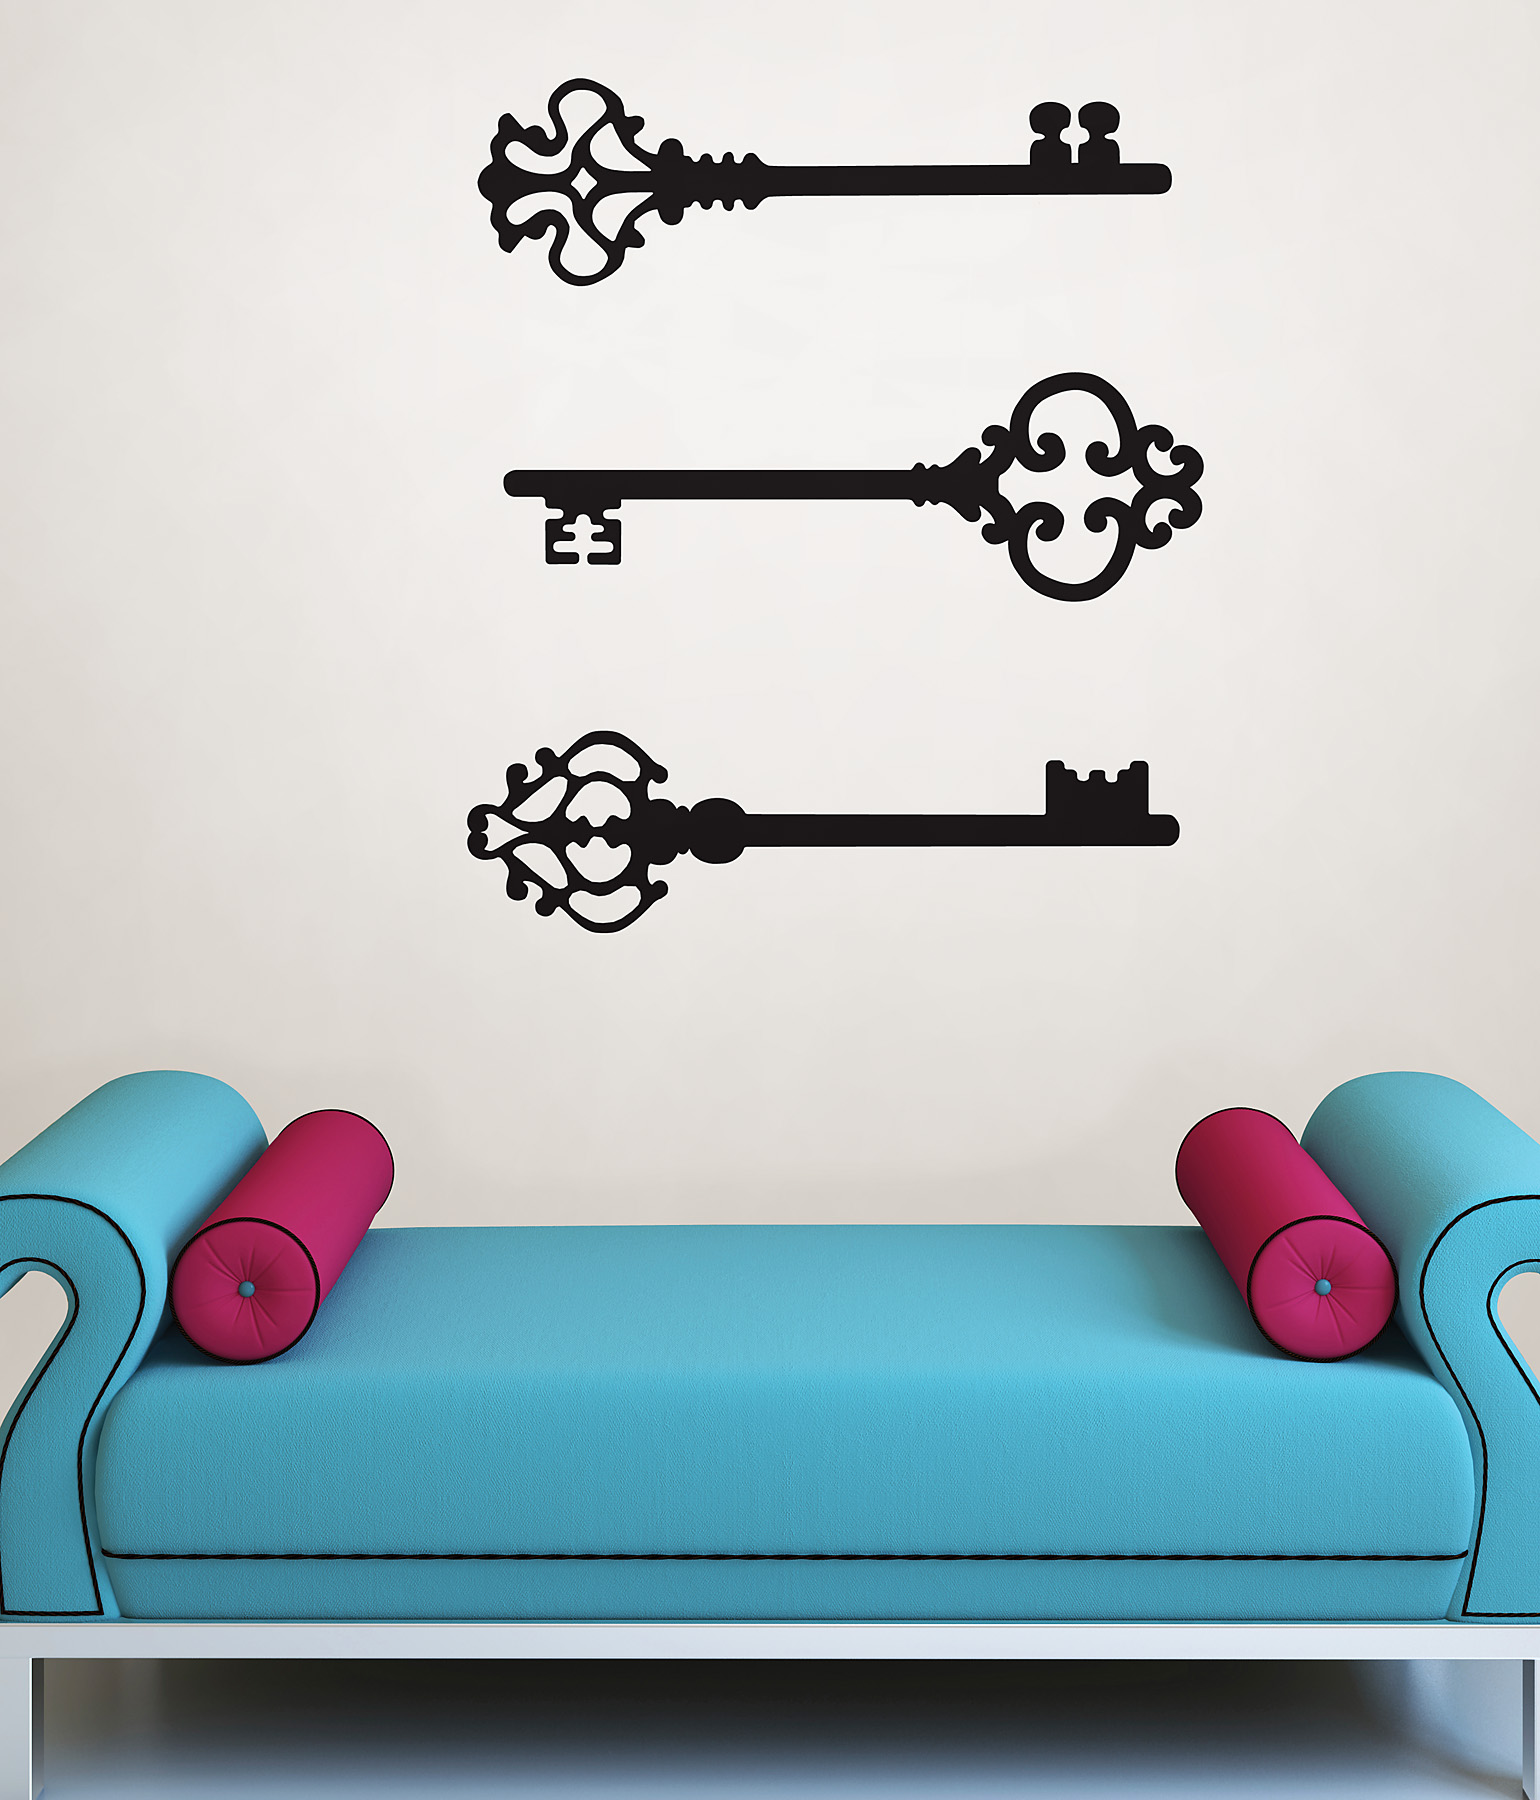 Blue ottoman and emty frames on the wall